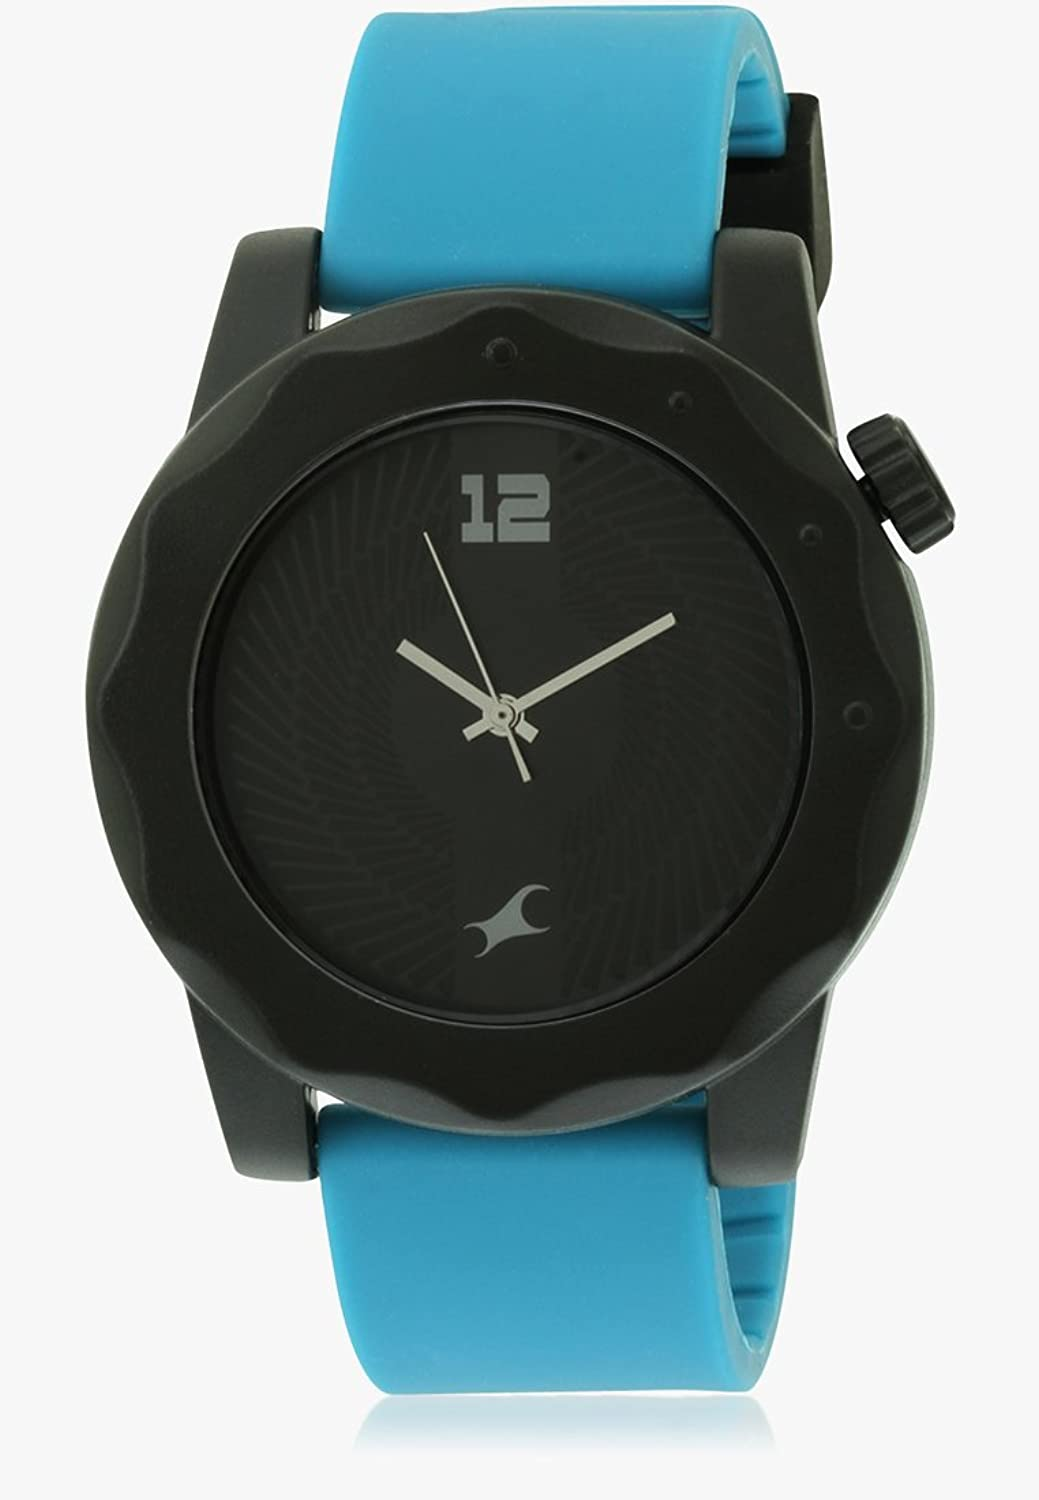 fastrack watches for men below 1000 on 23 2017 watchprice fastrack 38022pp02j watch for men